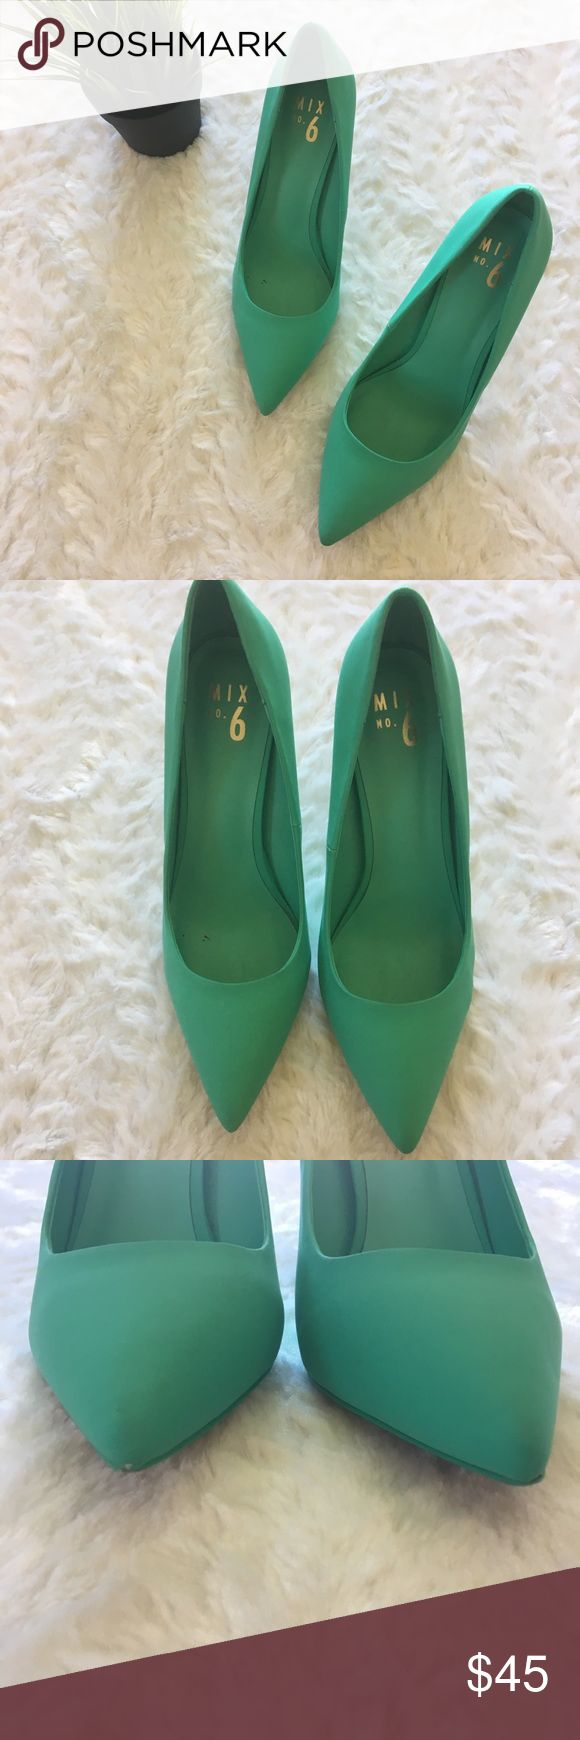 mix no. 6 / mint teal point toe high heel shoes worn once size 11 point toe high…